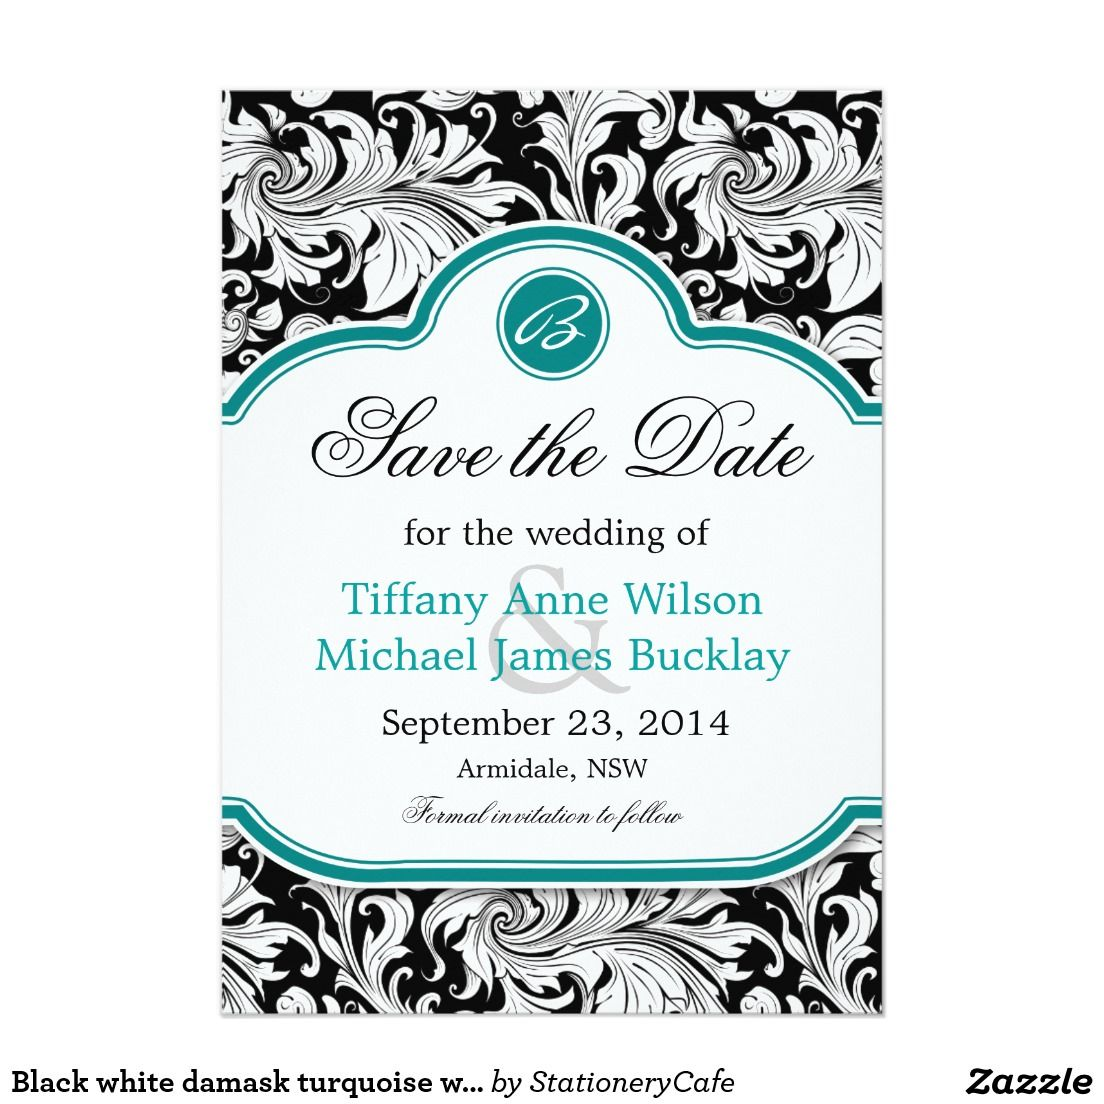 Black white damask turquoise wedding save the date card | White ...